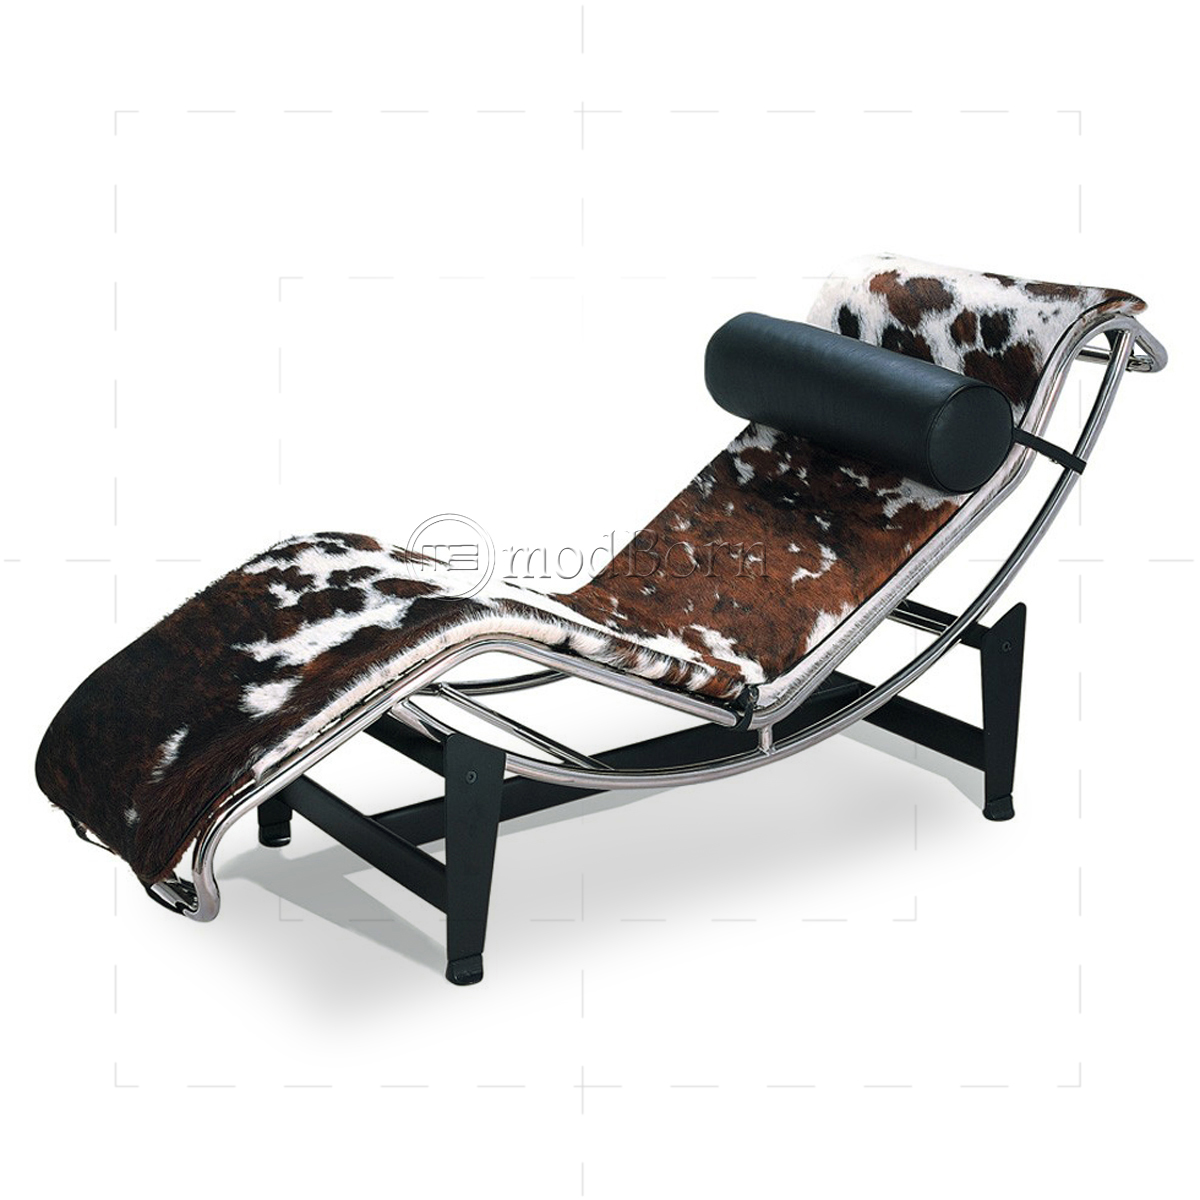 Le corbusier style lc4 chaise longue pony leather replica for Chaise lounge corbusier